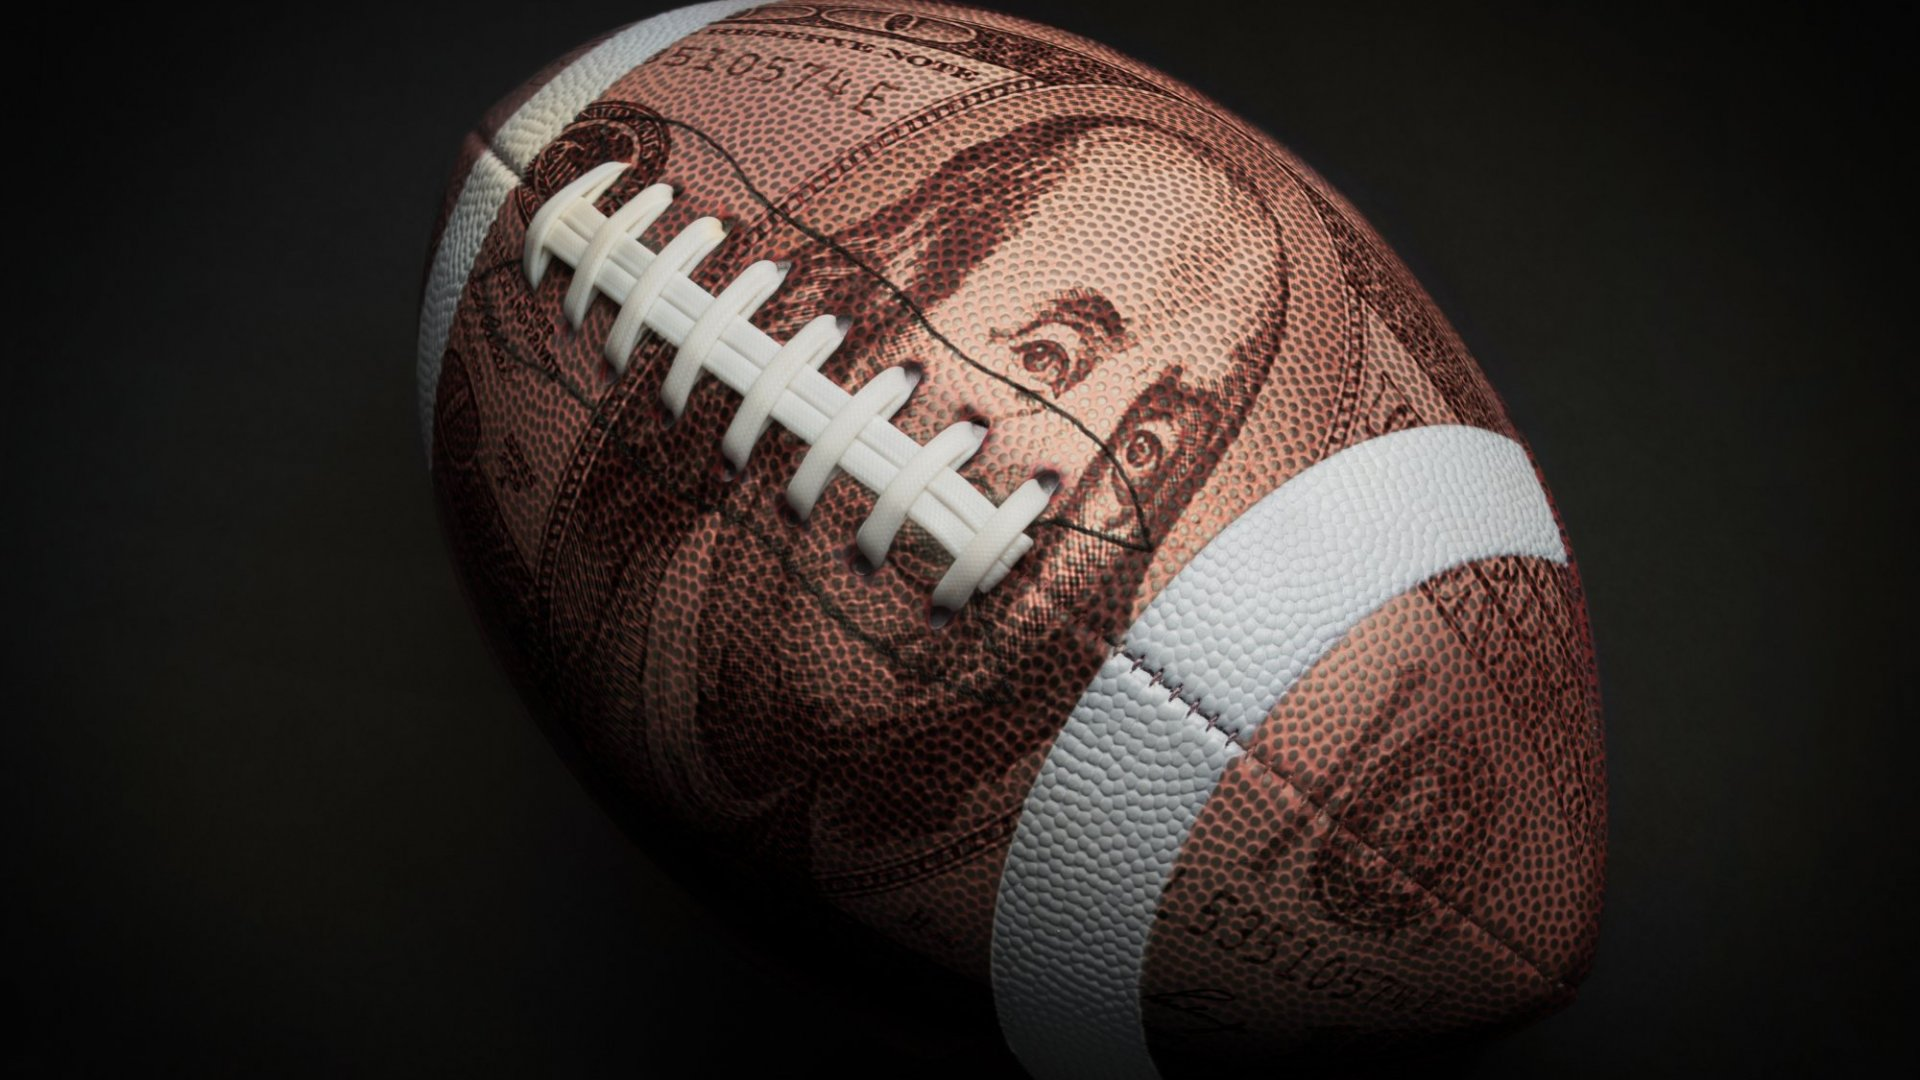 The Super Bowl is one of the biggest bet sporting events of the year.